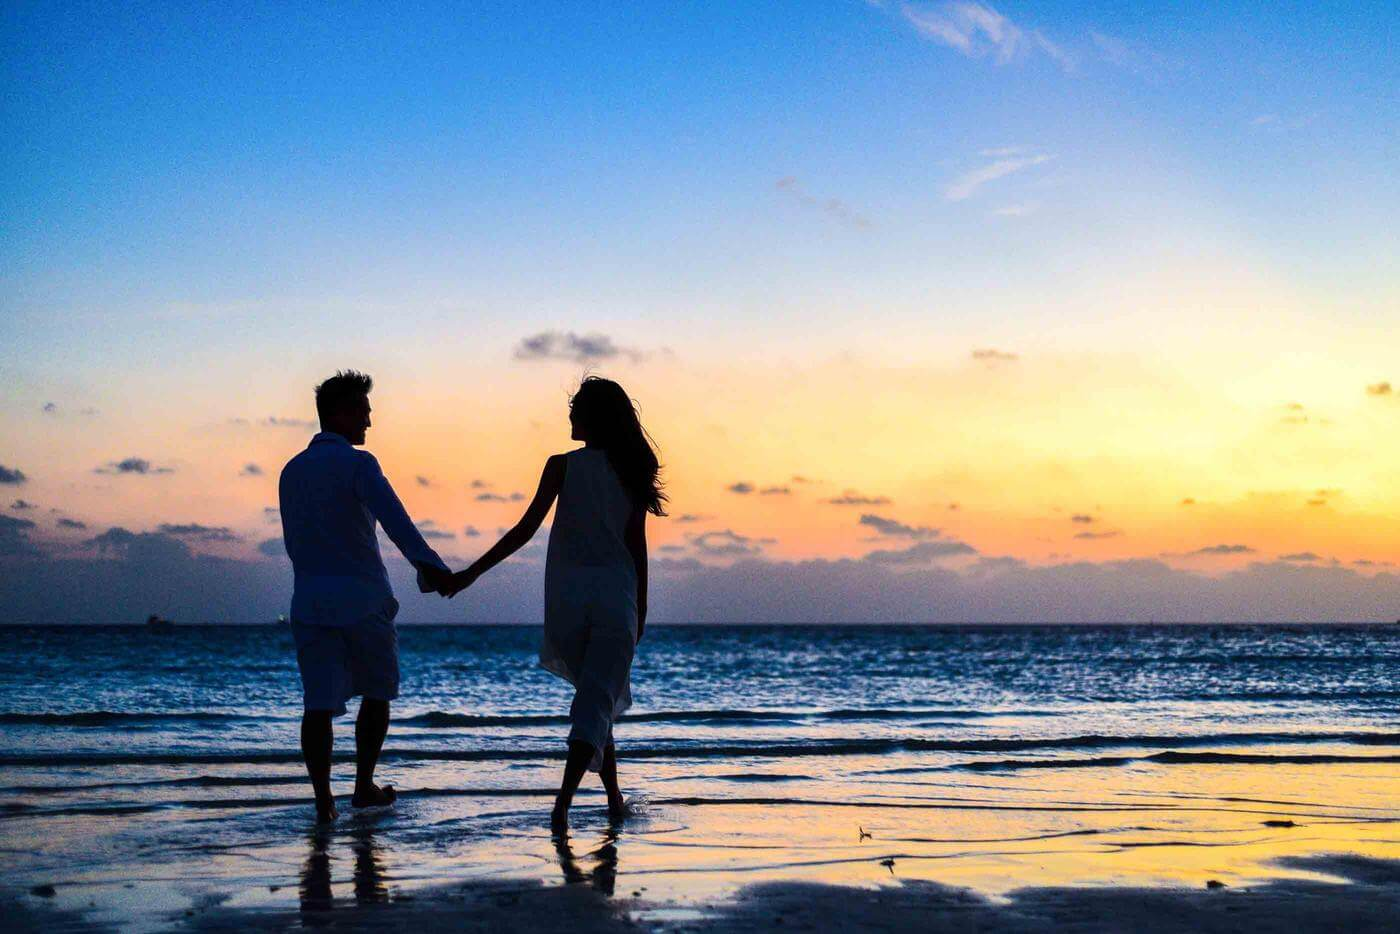 powerful love spells,Love Spell to Force Someone to Love You,authentic love spells caster